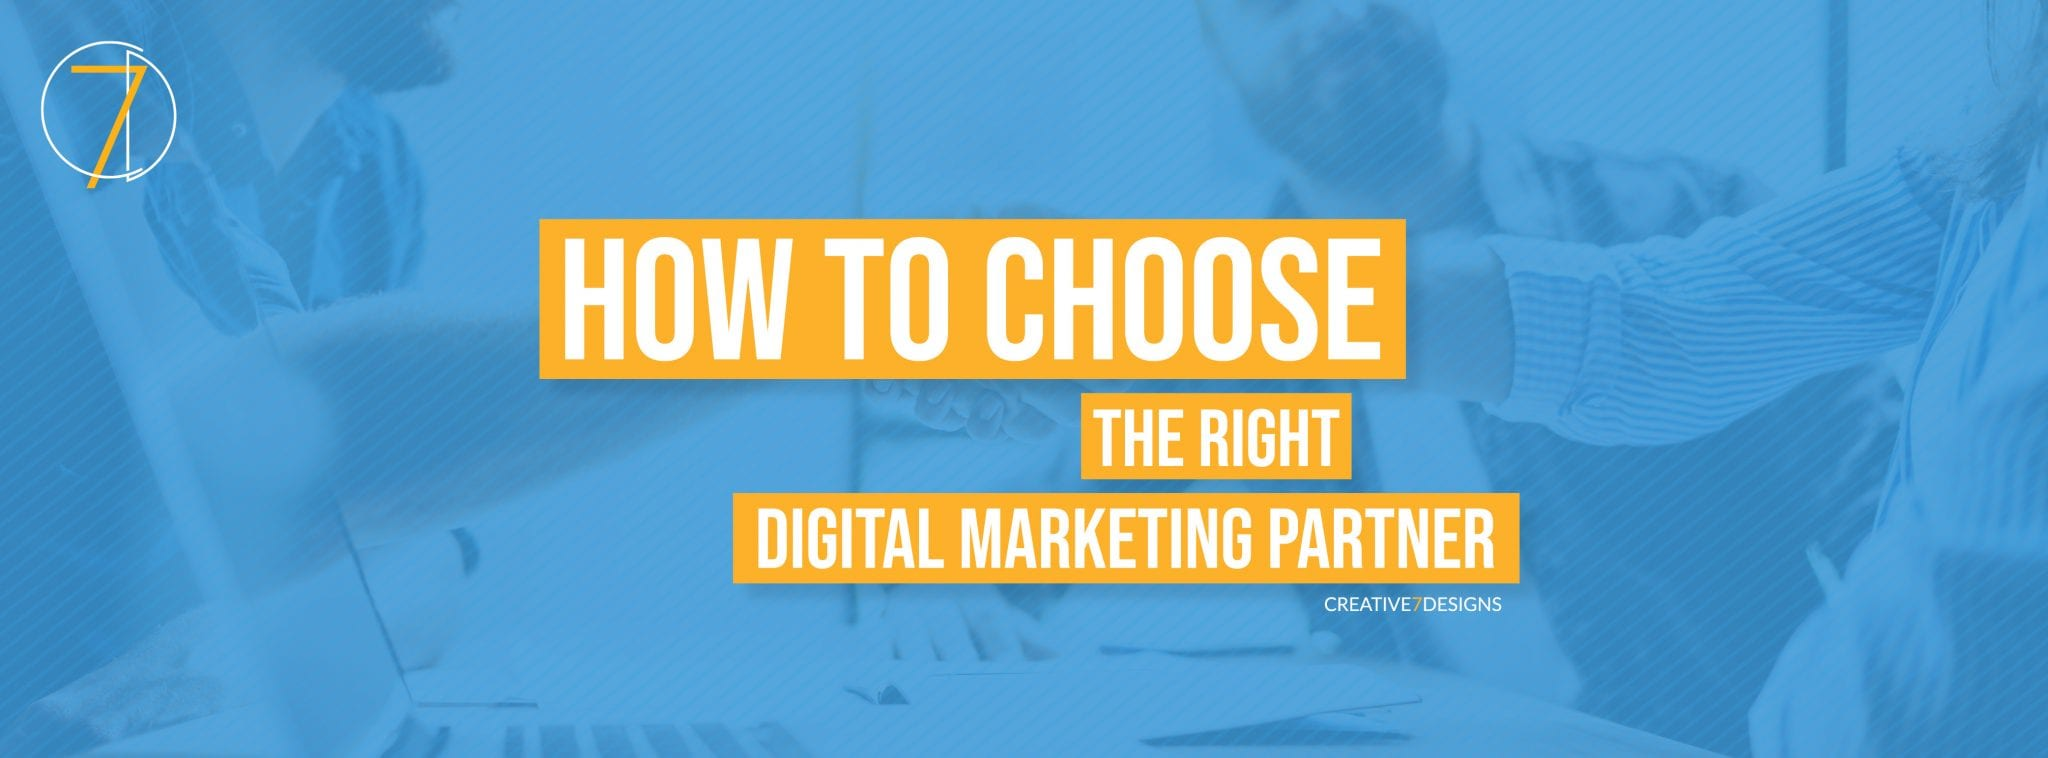 How to Select the Right Digital Marketing Partner